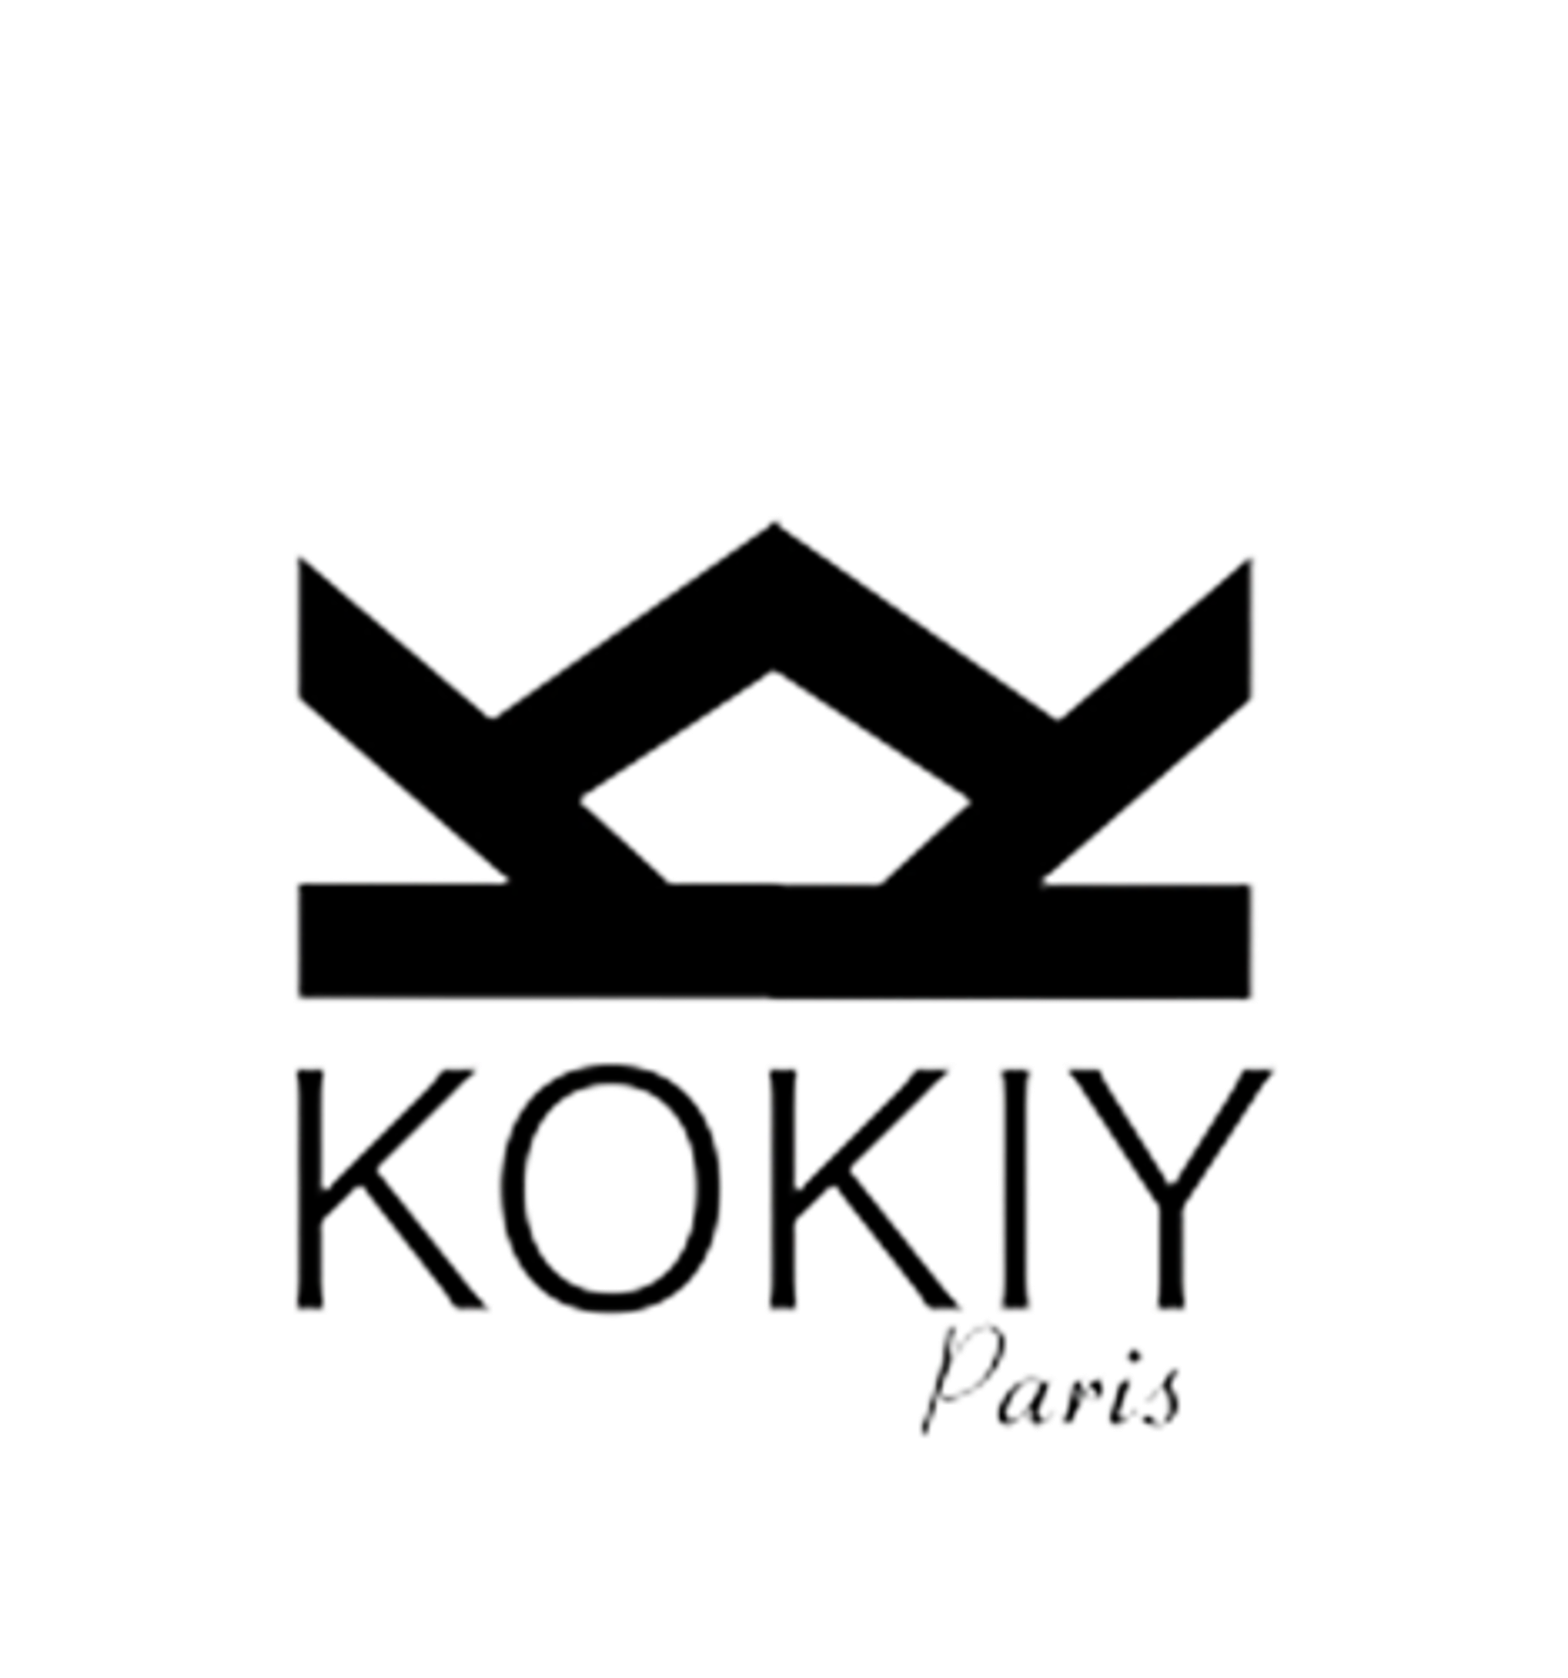 KOKIY PARIS